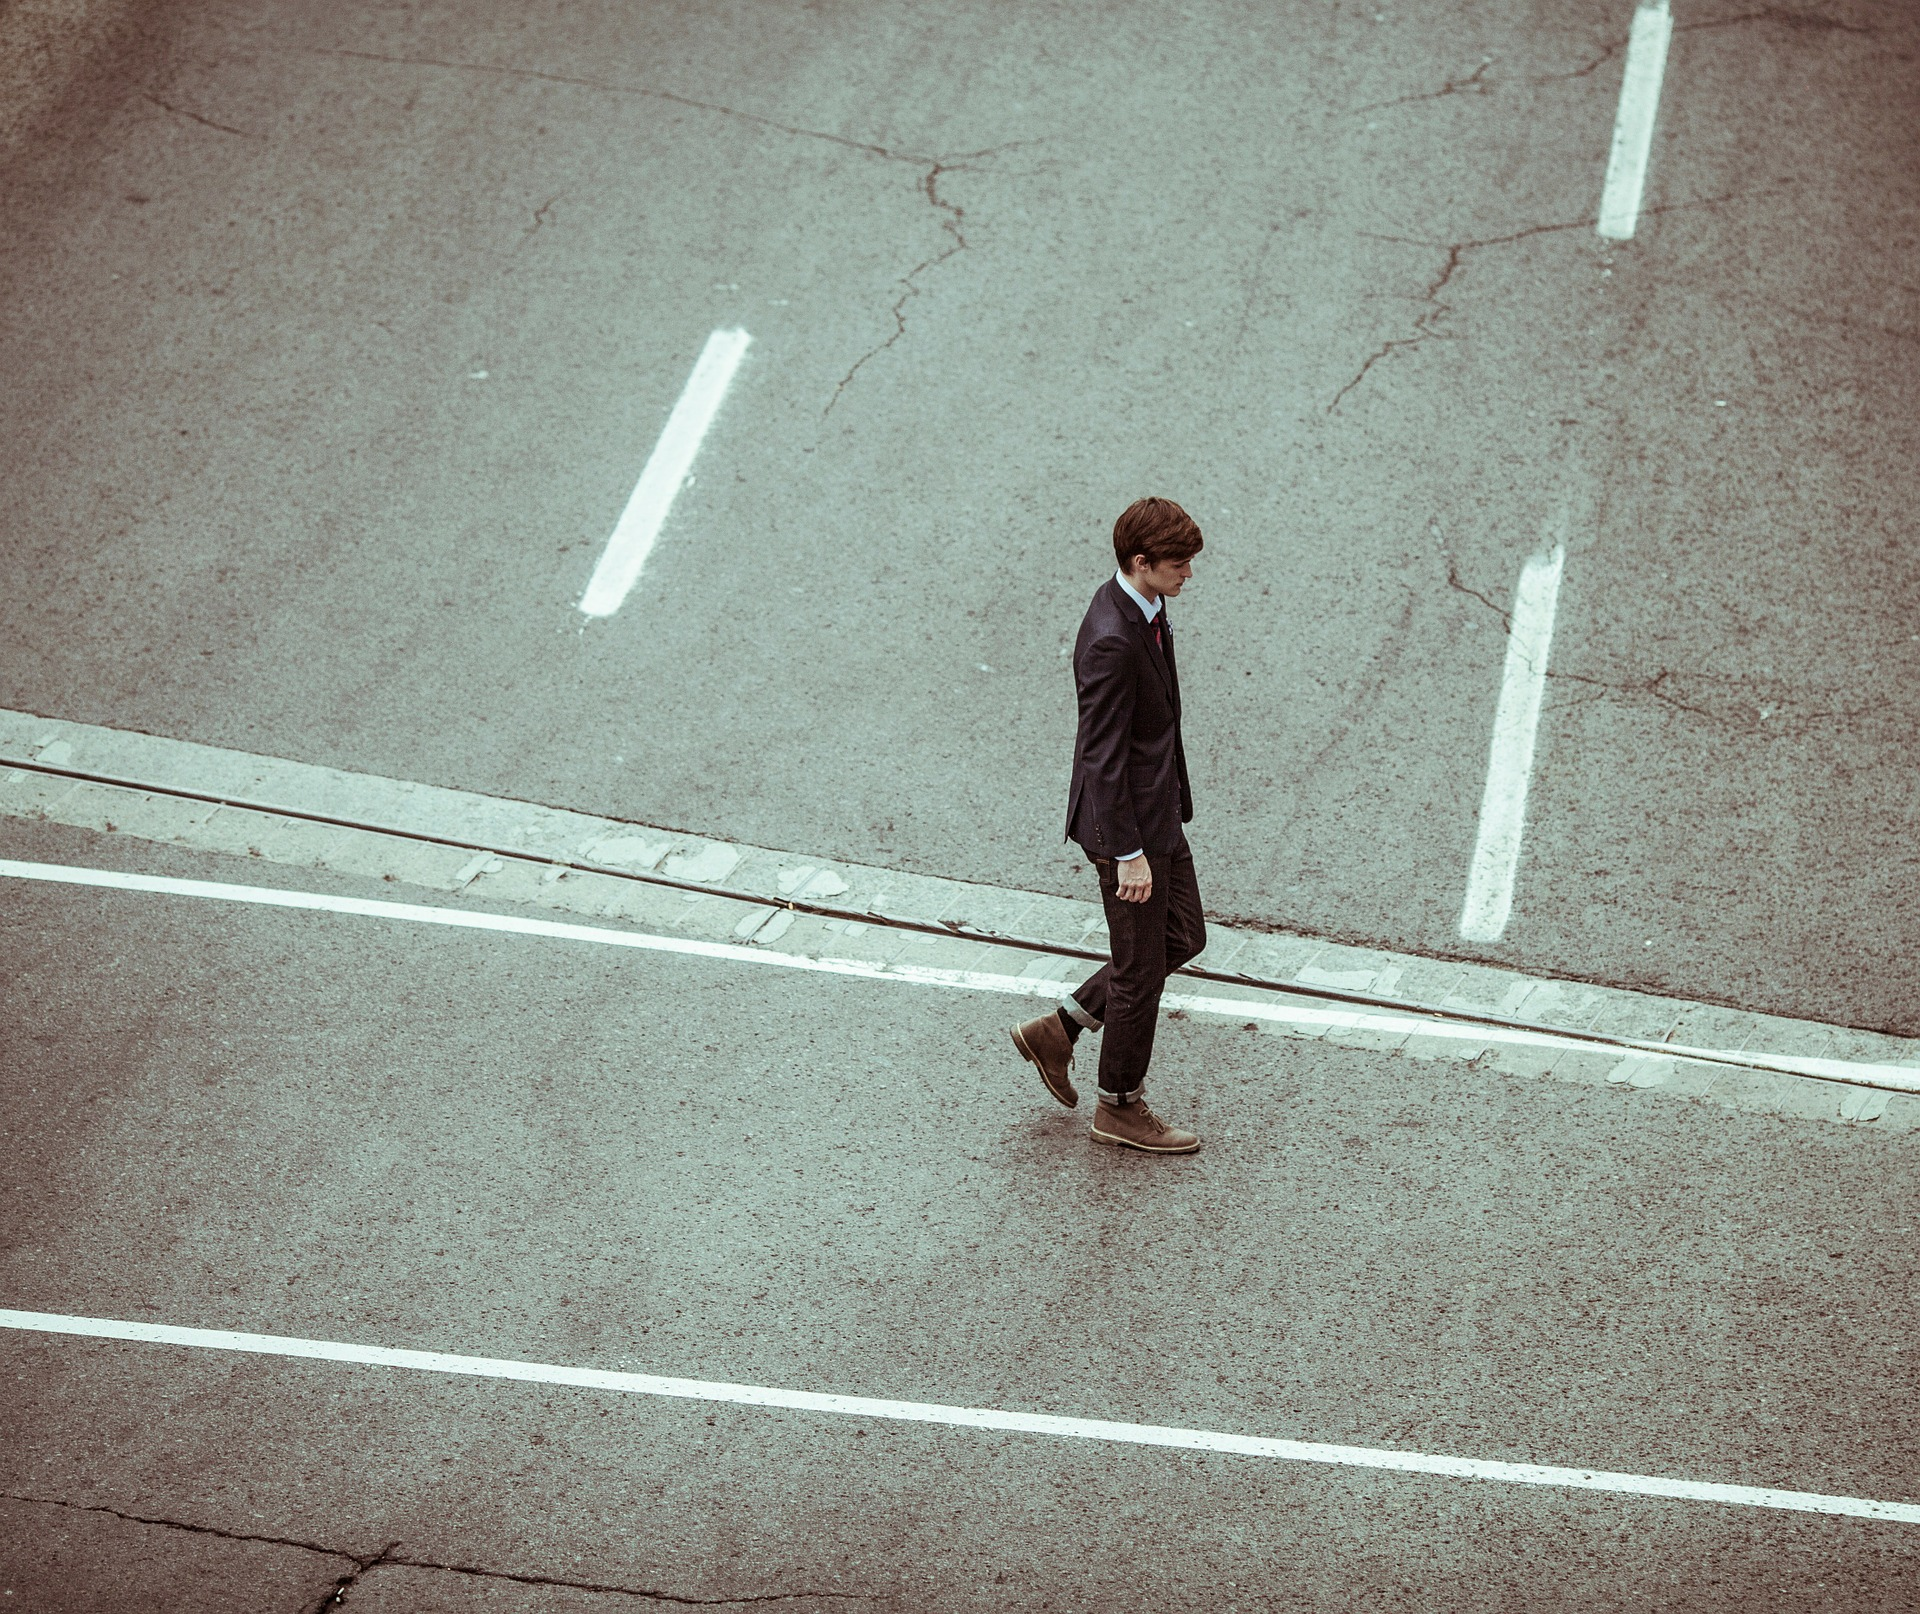 A businessman walks alone across a road